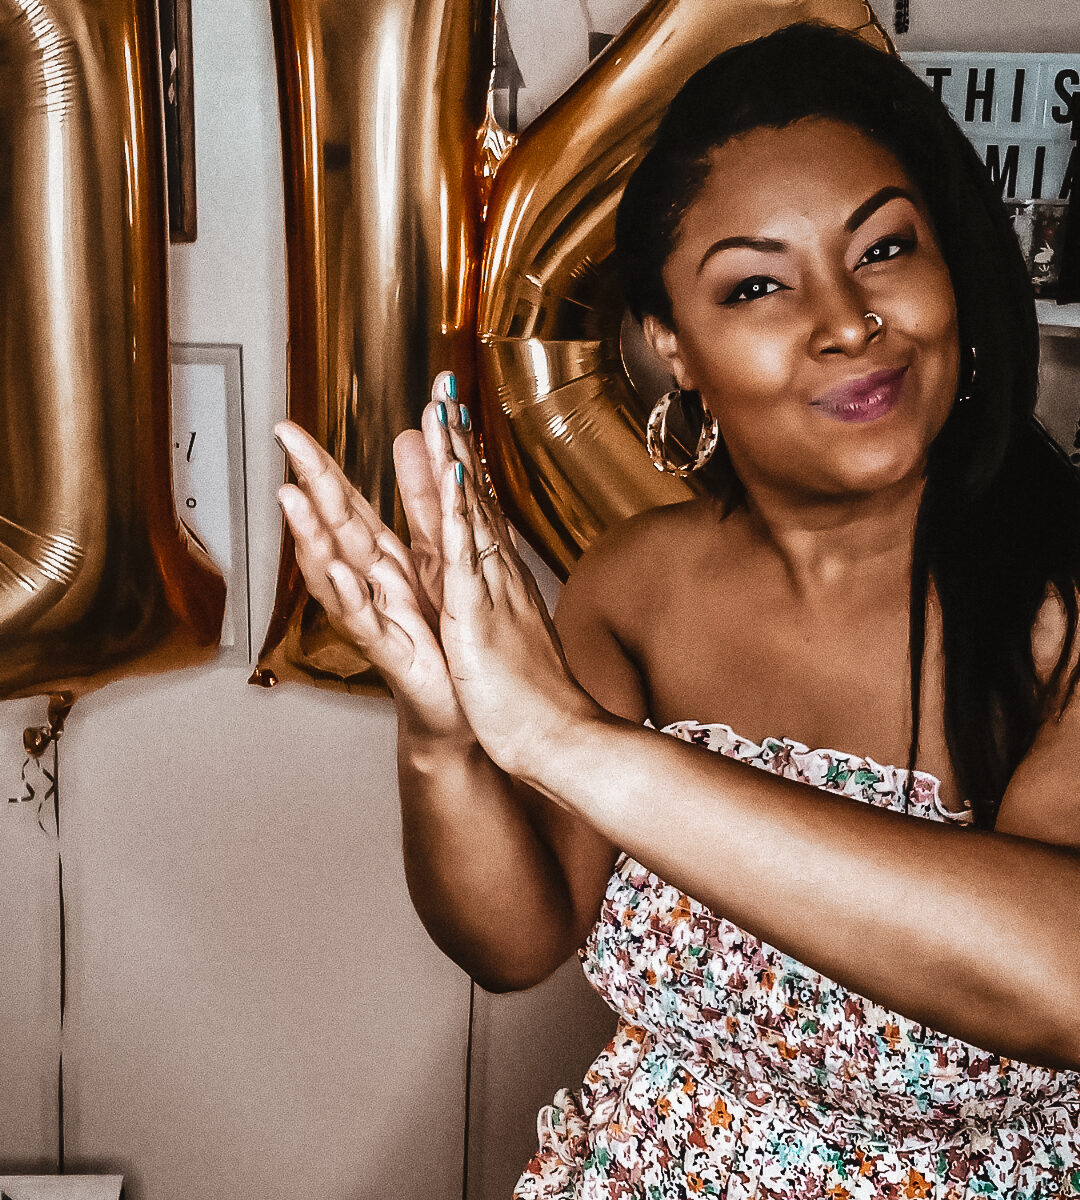 Black woman with light skin smiles into the camera and claps her hands. A ballon sign that spells out 1K is in the background.